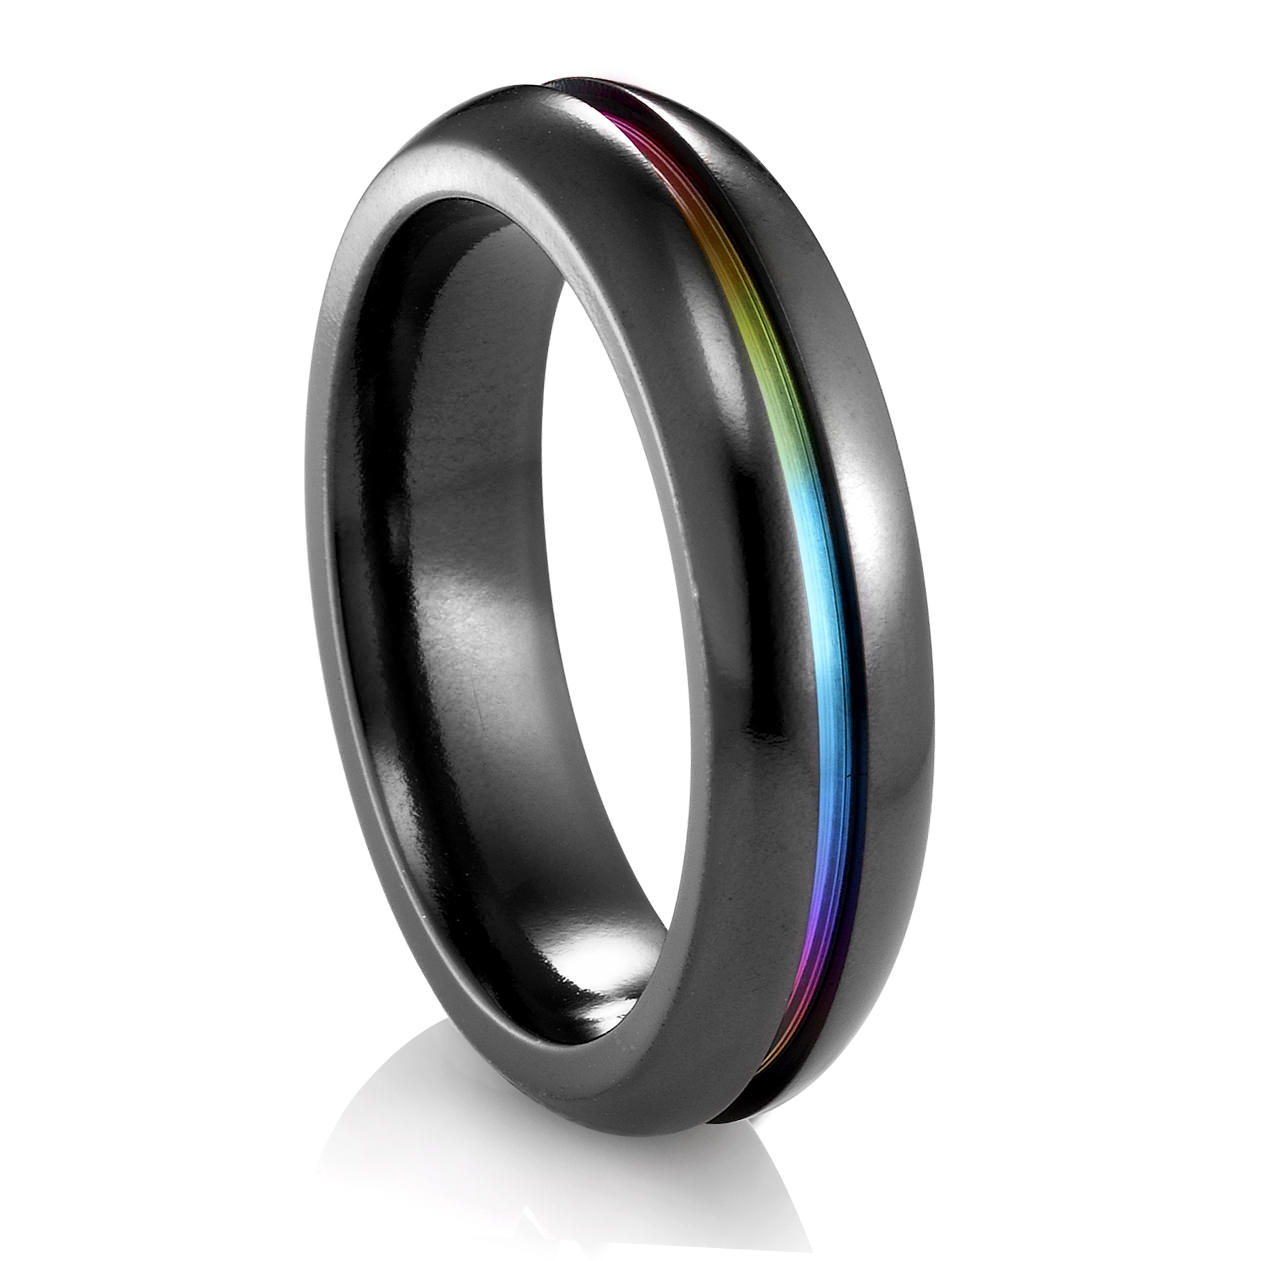 colorful com rings engagement womens acupress rainbow wedding amazon size men steel dp band titanium